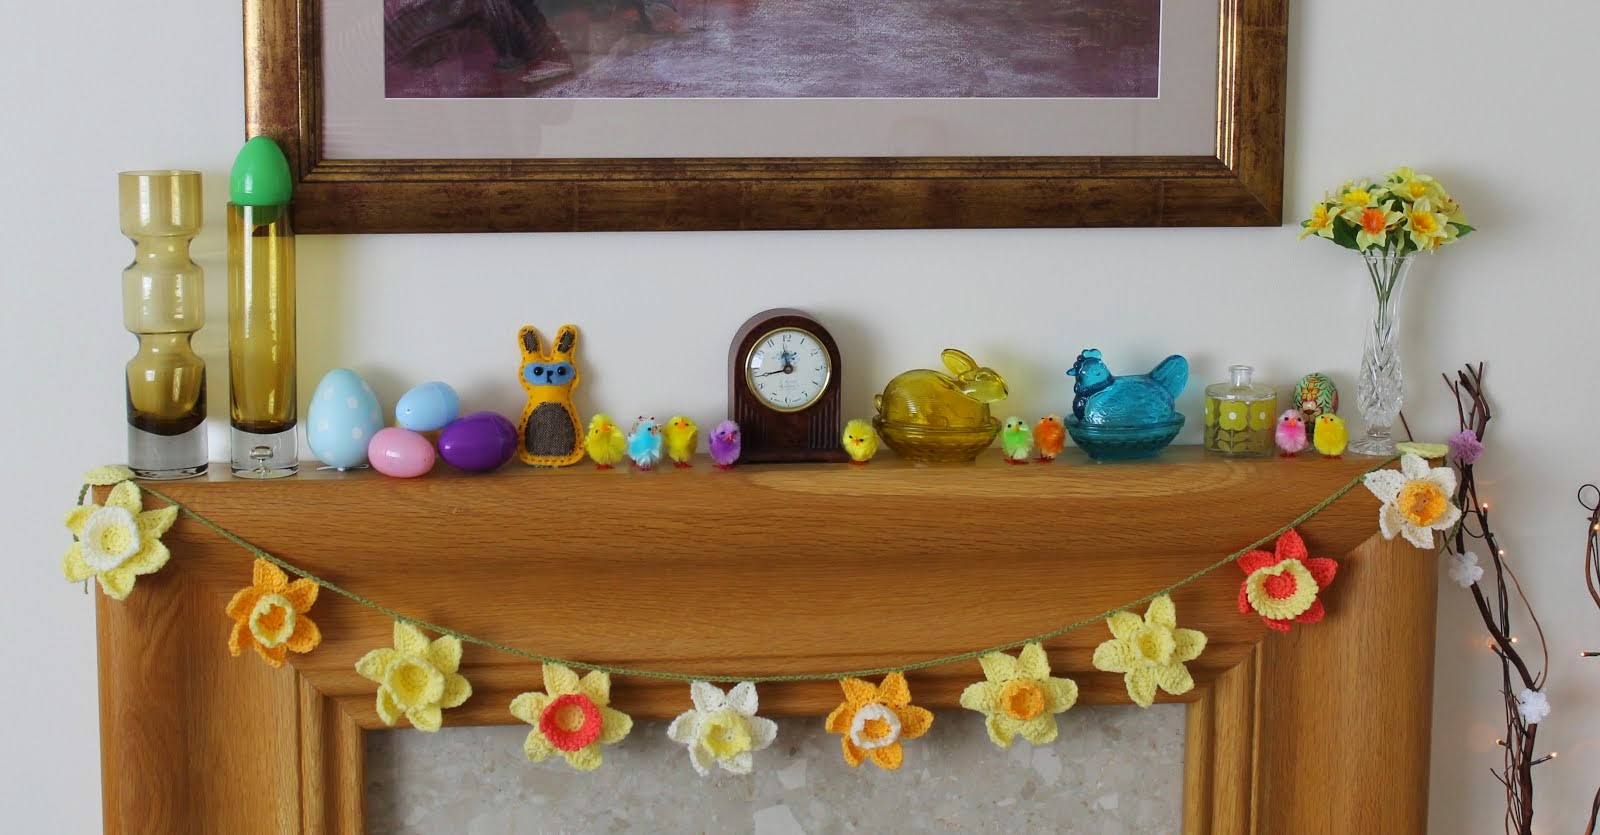 A year of decorating my mantel